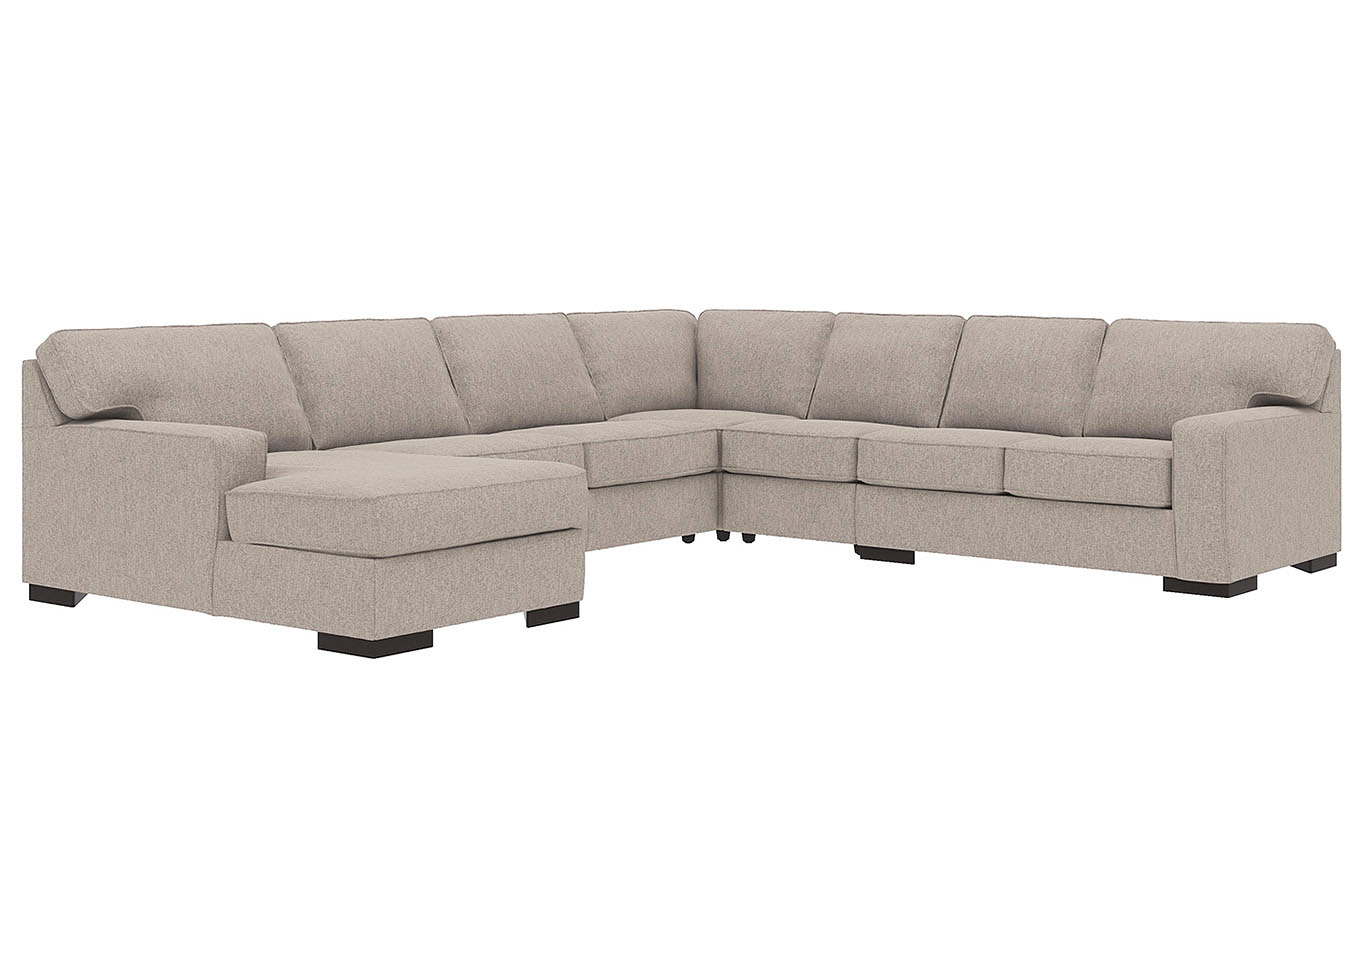 Ashlor Nuvella Slate LAF 5 Piece Chaise Sectional,Ashley